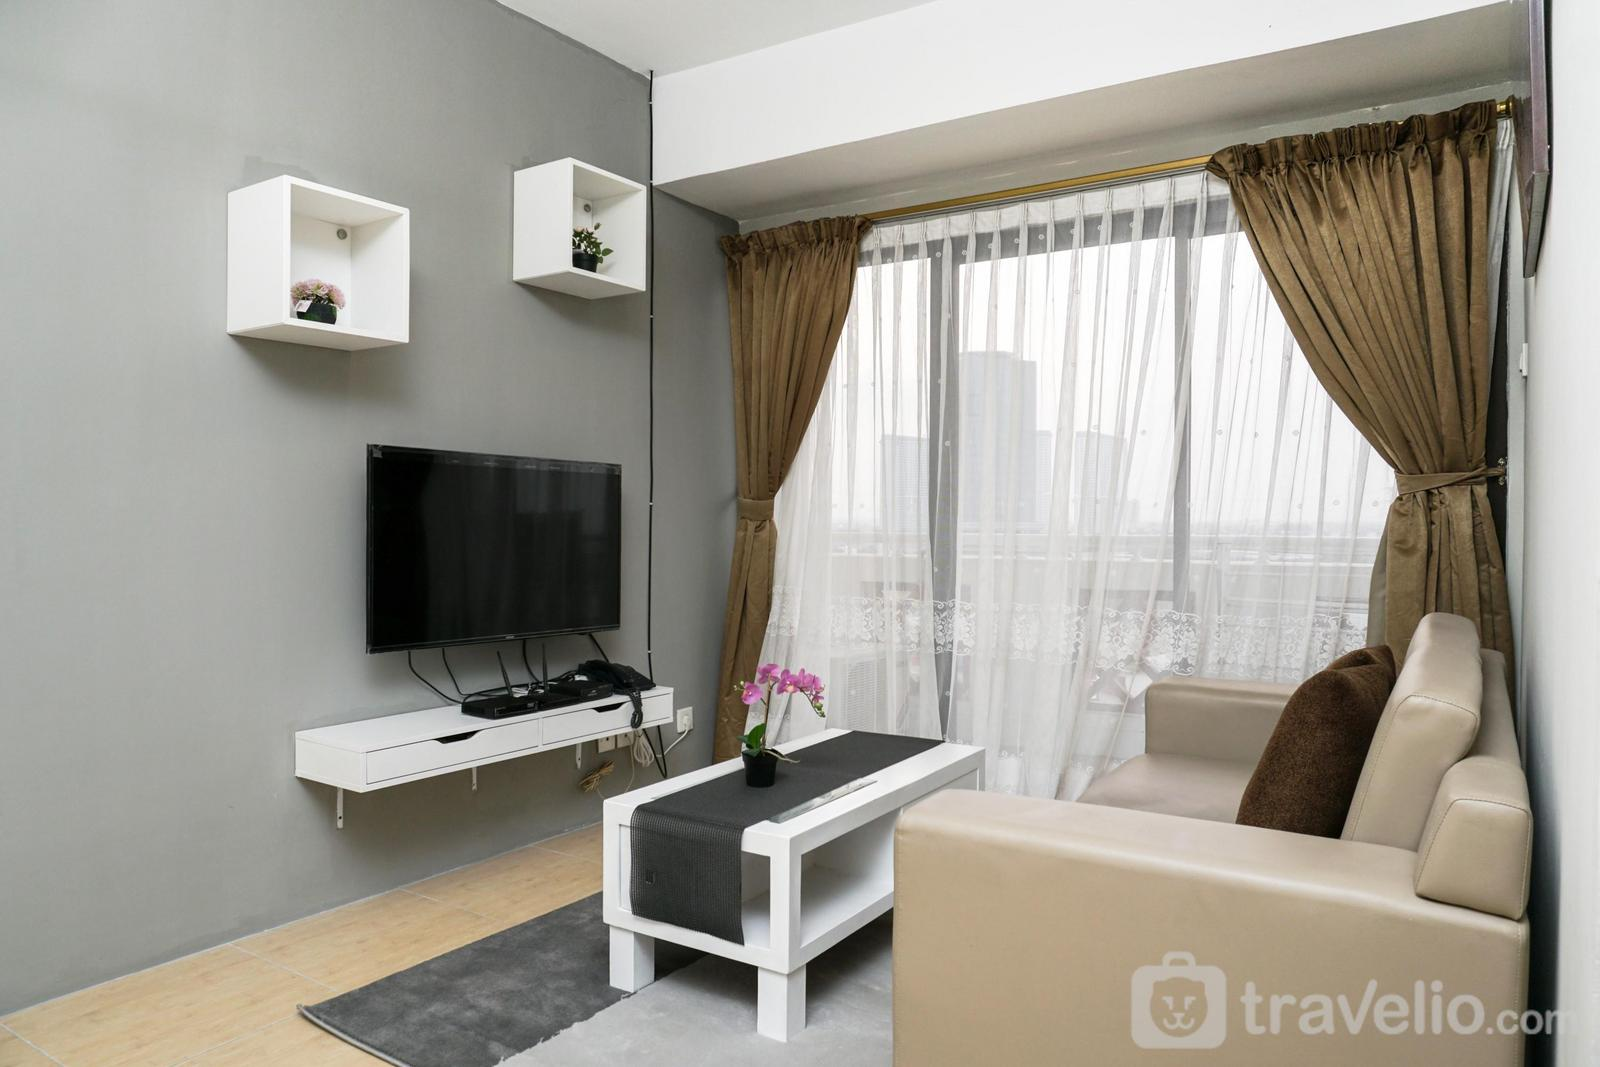 Apartemen Puri Garden - Spacious and Comfortable 2BR Puri Garden Apartment By Travelio